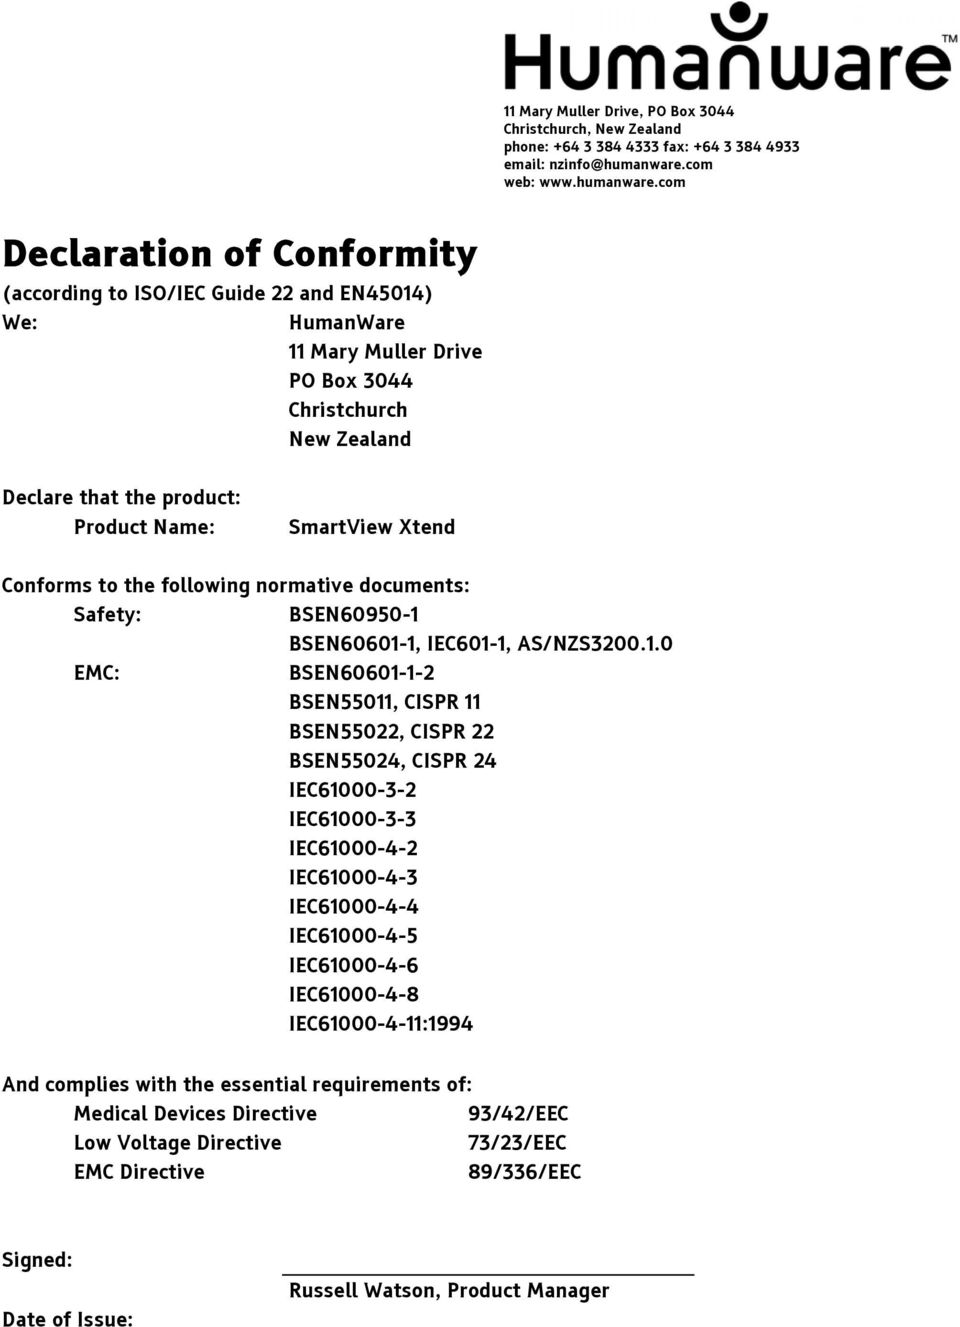 com Declaration of Conformity (according to ISO/IEC Guide 22 and EN45014) We: HumanWare 11 Mary Muller Drive PO Box 3044 Christchurch New Zealand Declare that the product: Product Name: SmartView